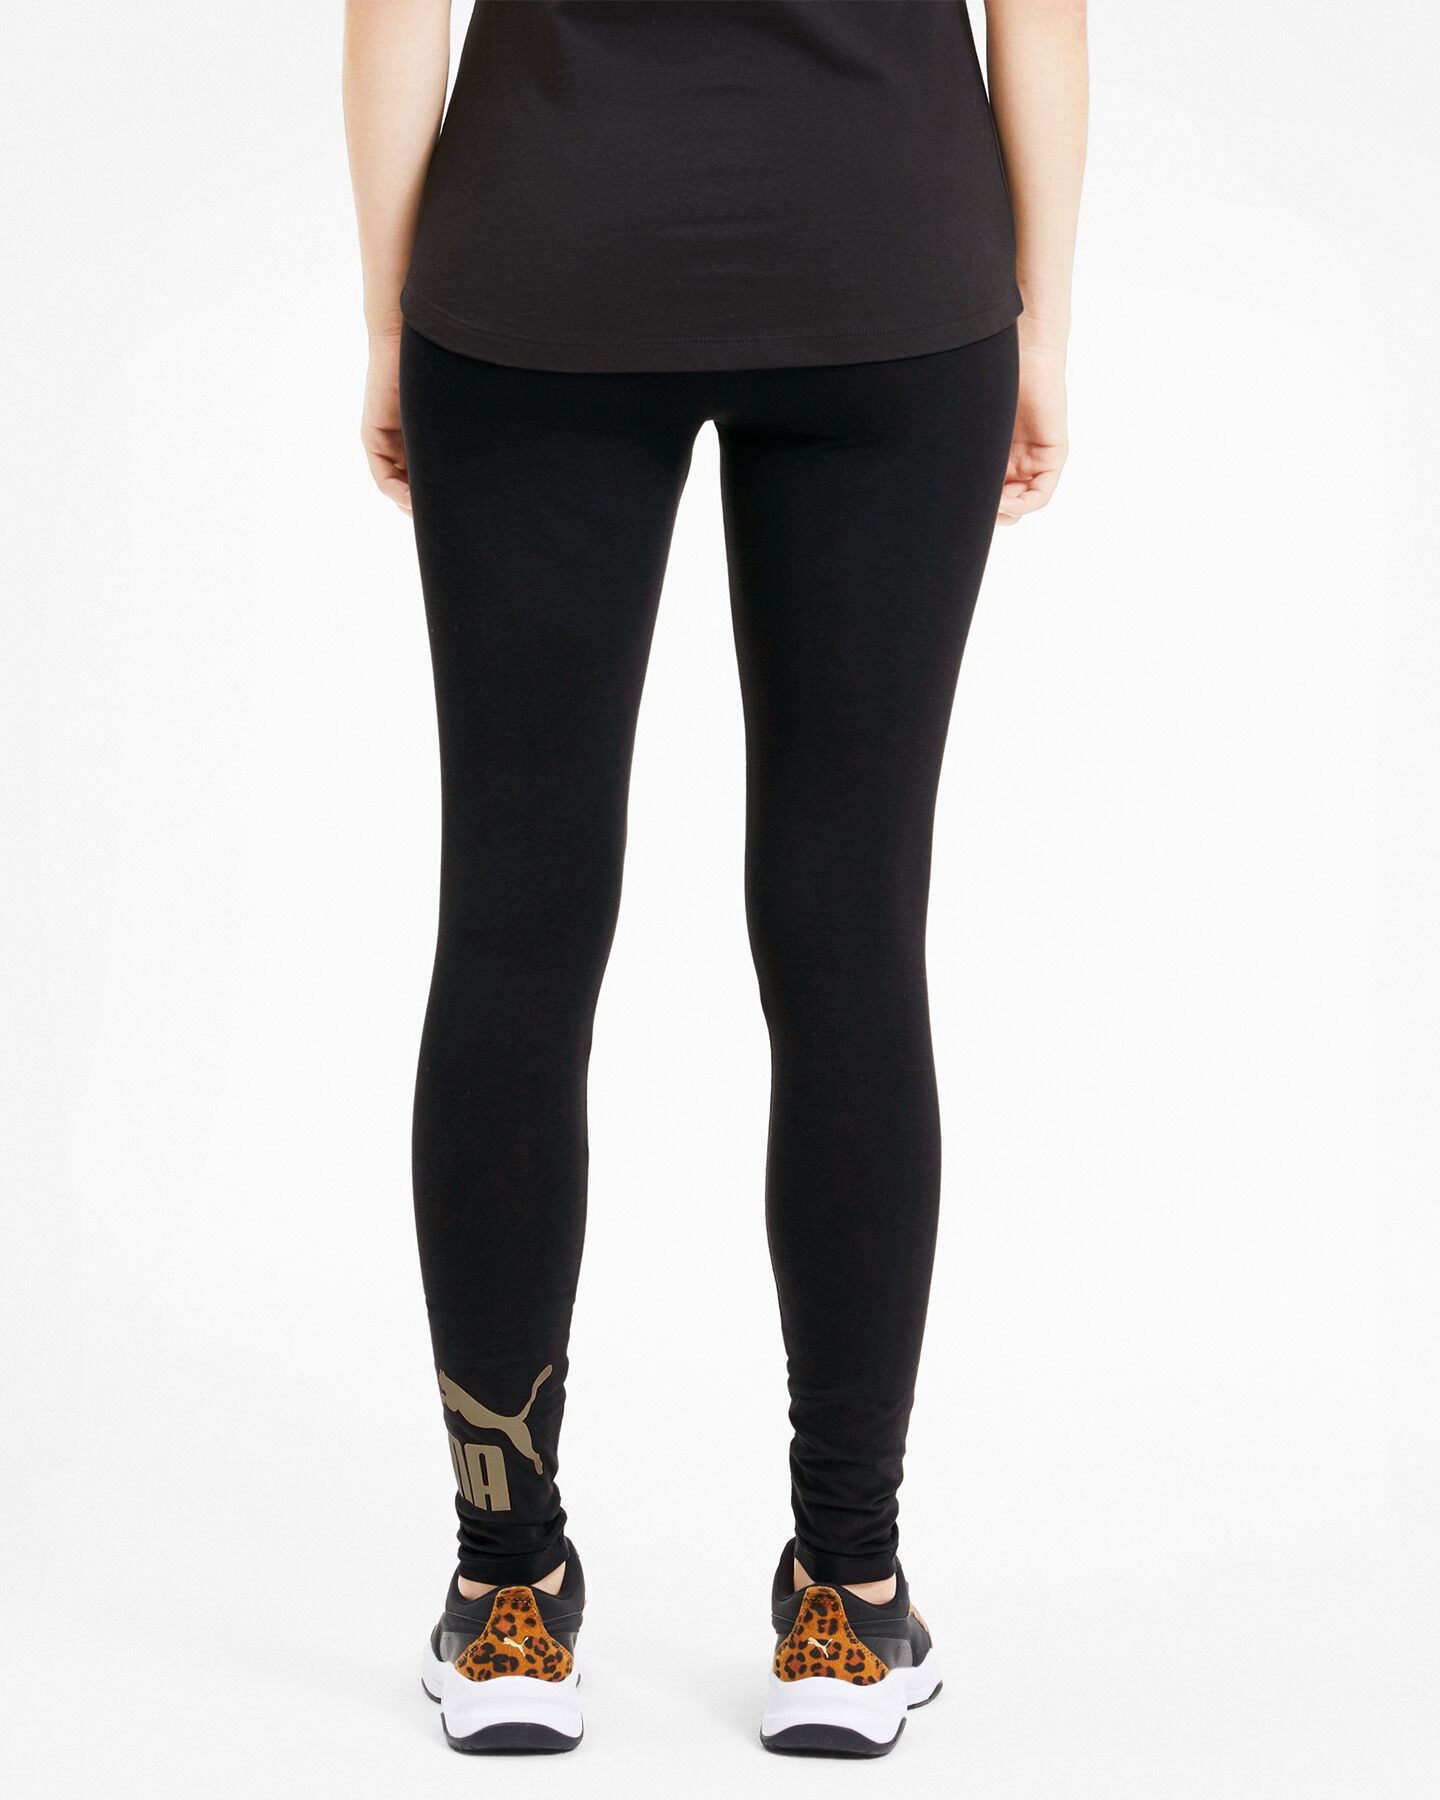 Leggings PUMA JSTRETCH LOGO FOIL W S5040858 scatto 3